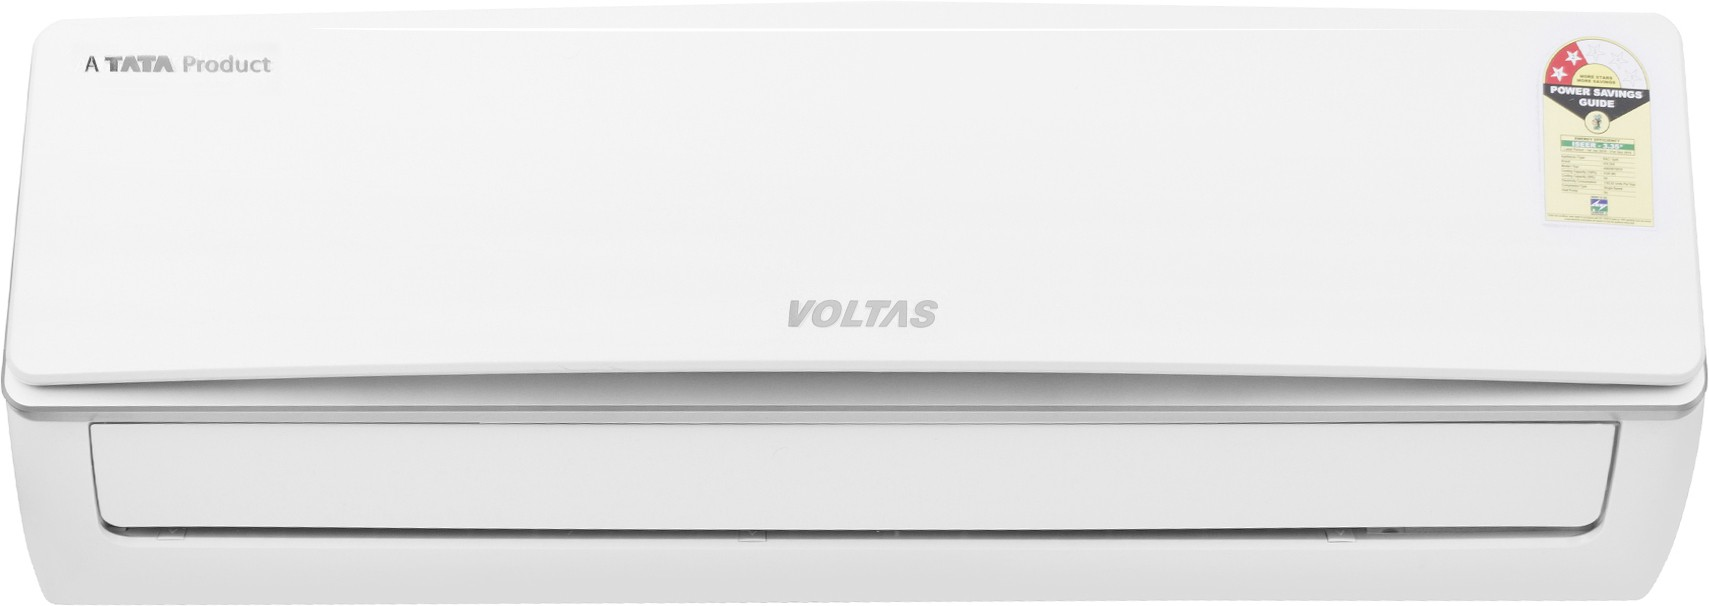 Voltas 182 SZS 1.5 Ton 2 Star BEE Rating 2018 Split AC Image